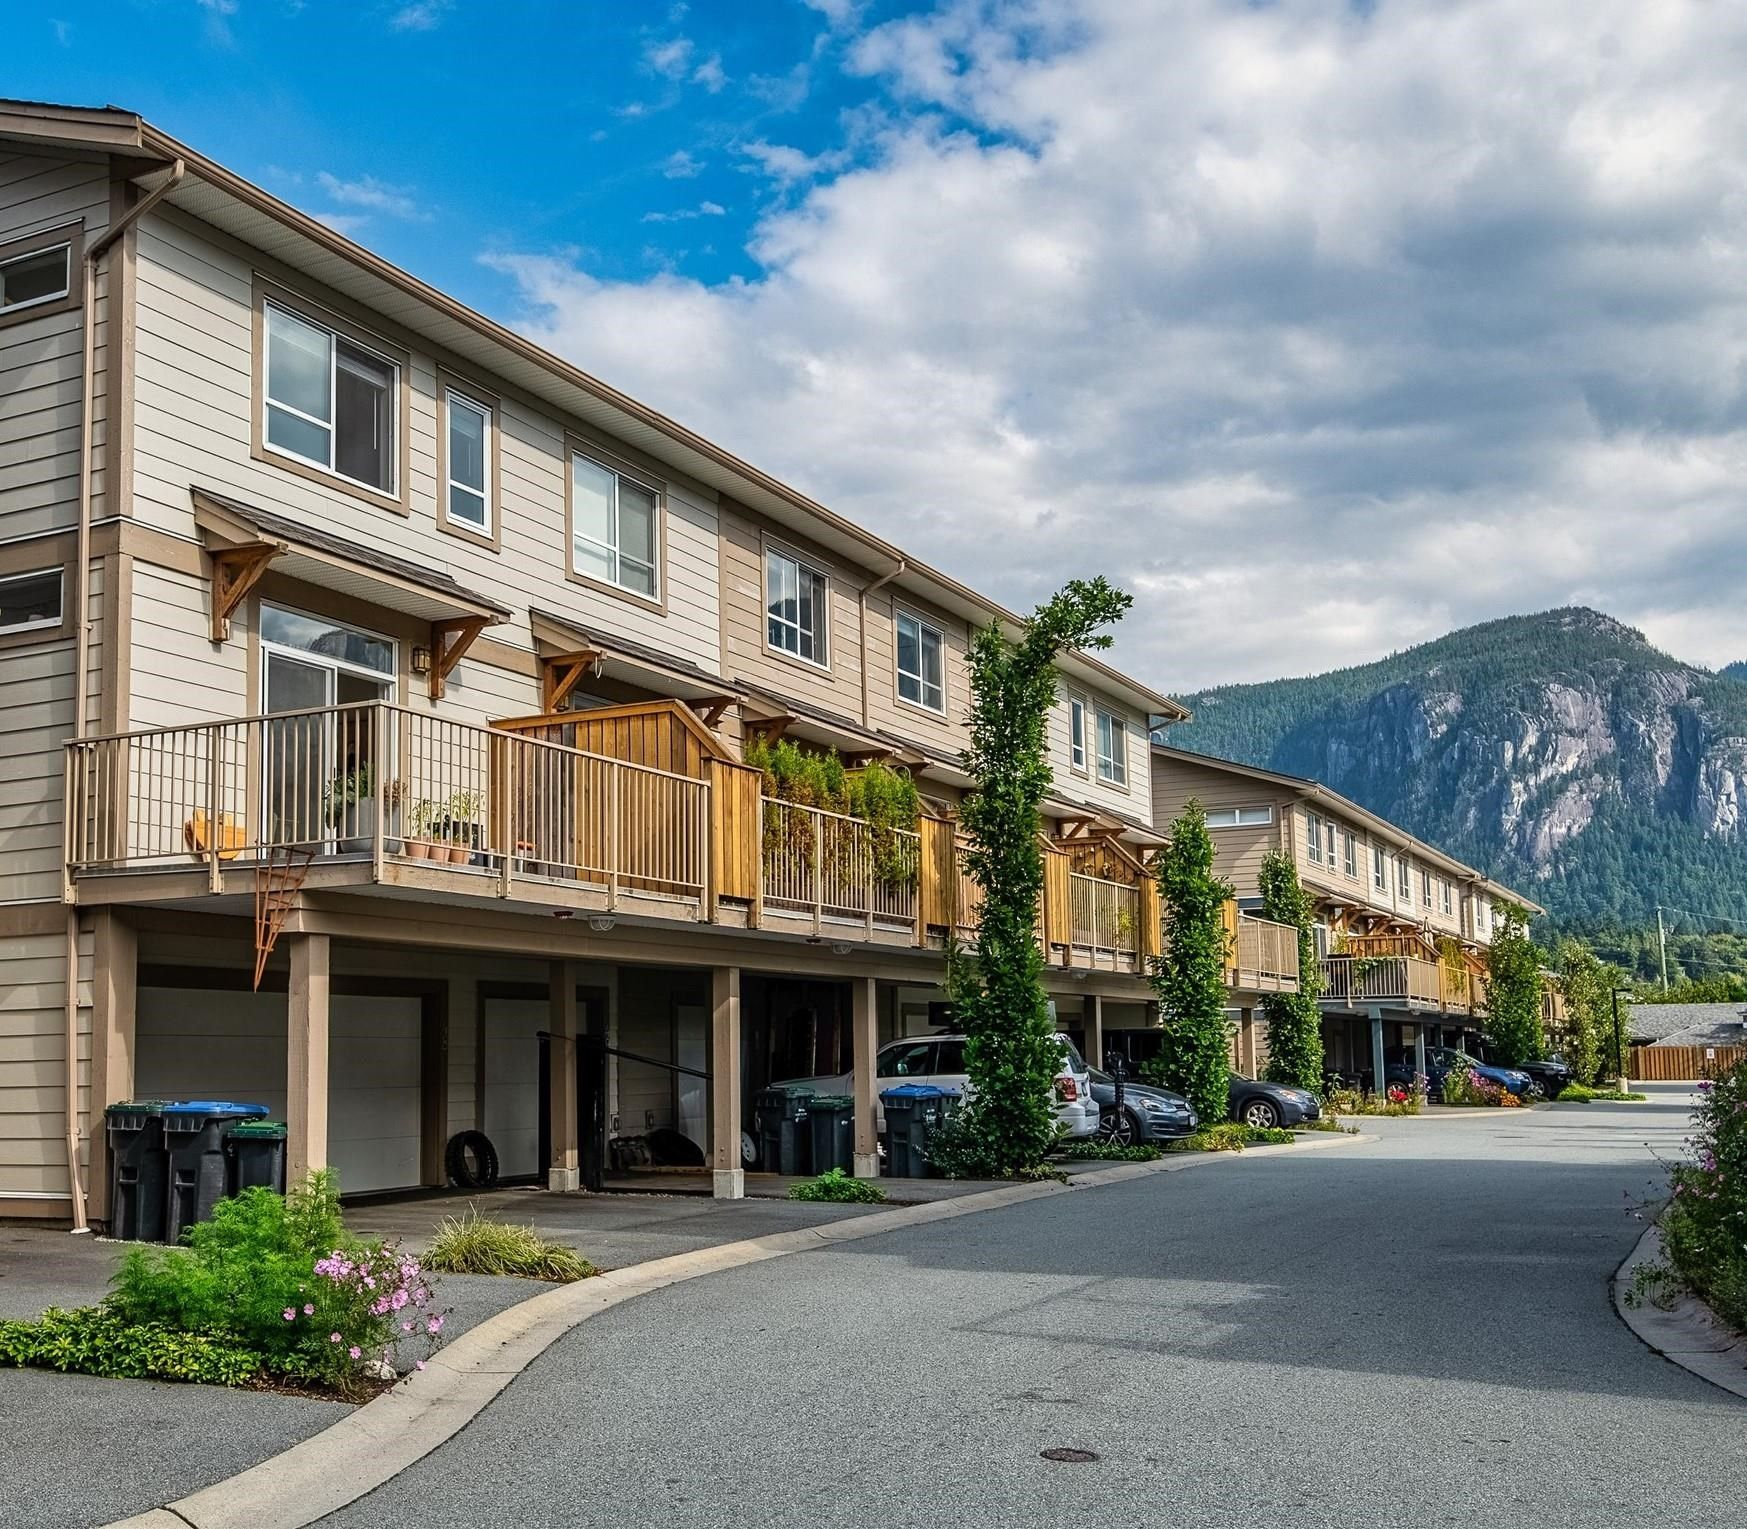 """Main Photo: 48 1188 WILSON Crescent in Squamish: Dentville Townhouse for sale in """"The Current"""" : MLS®# R2617887"""